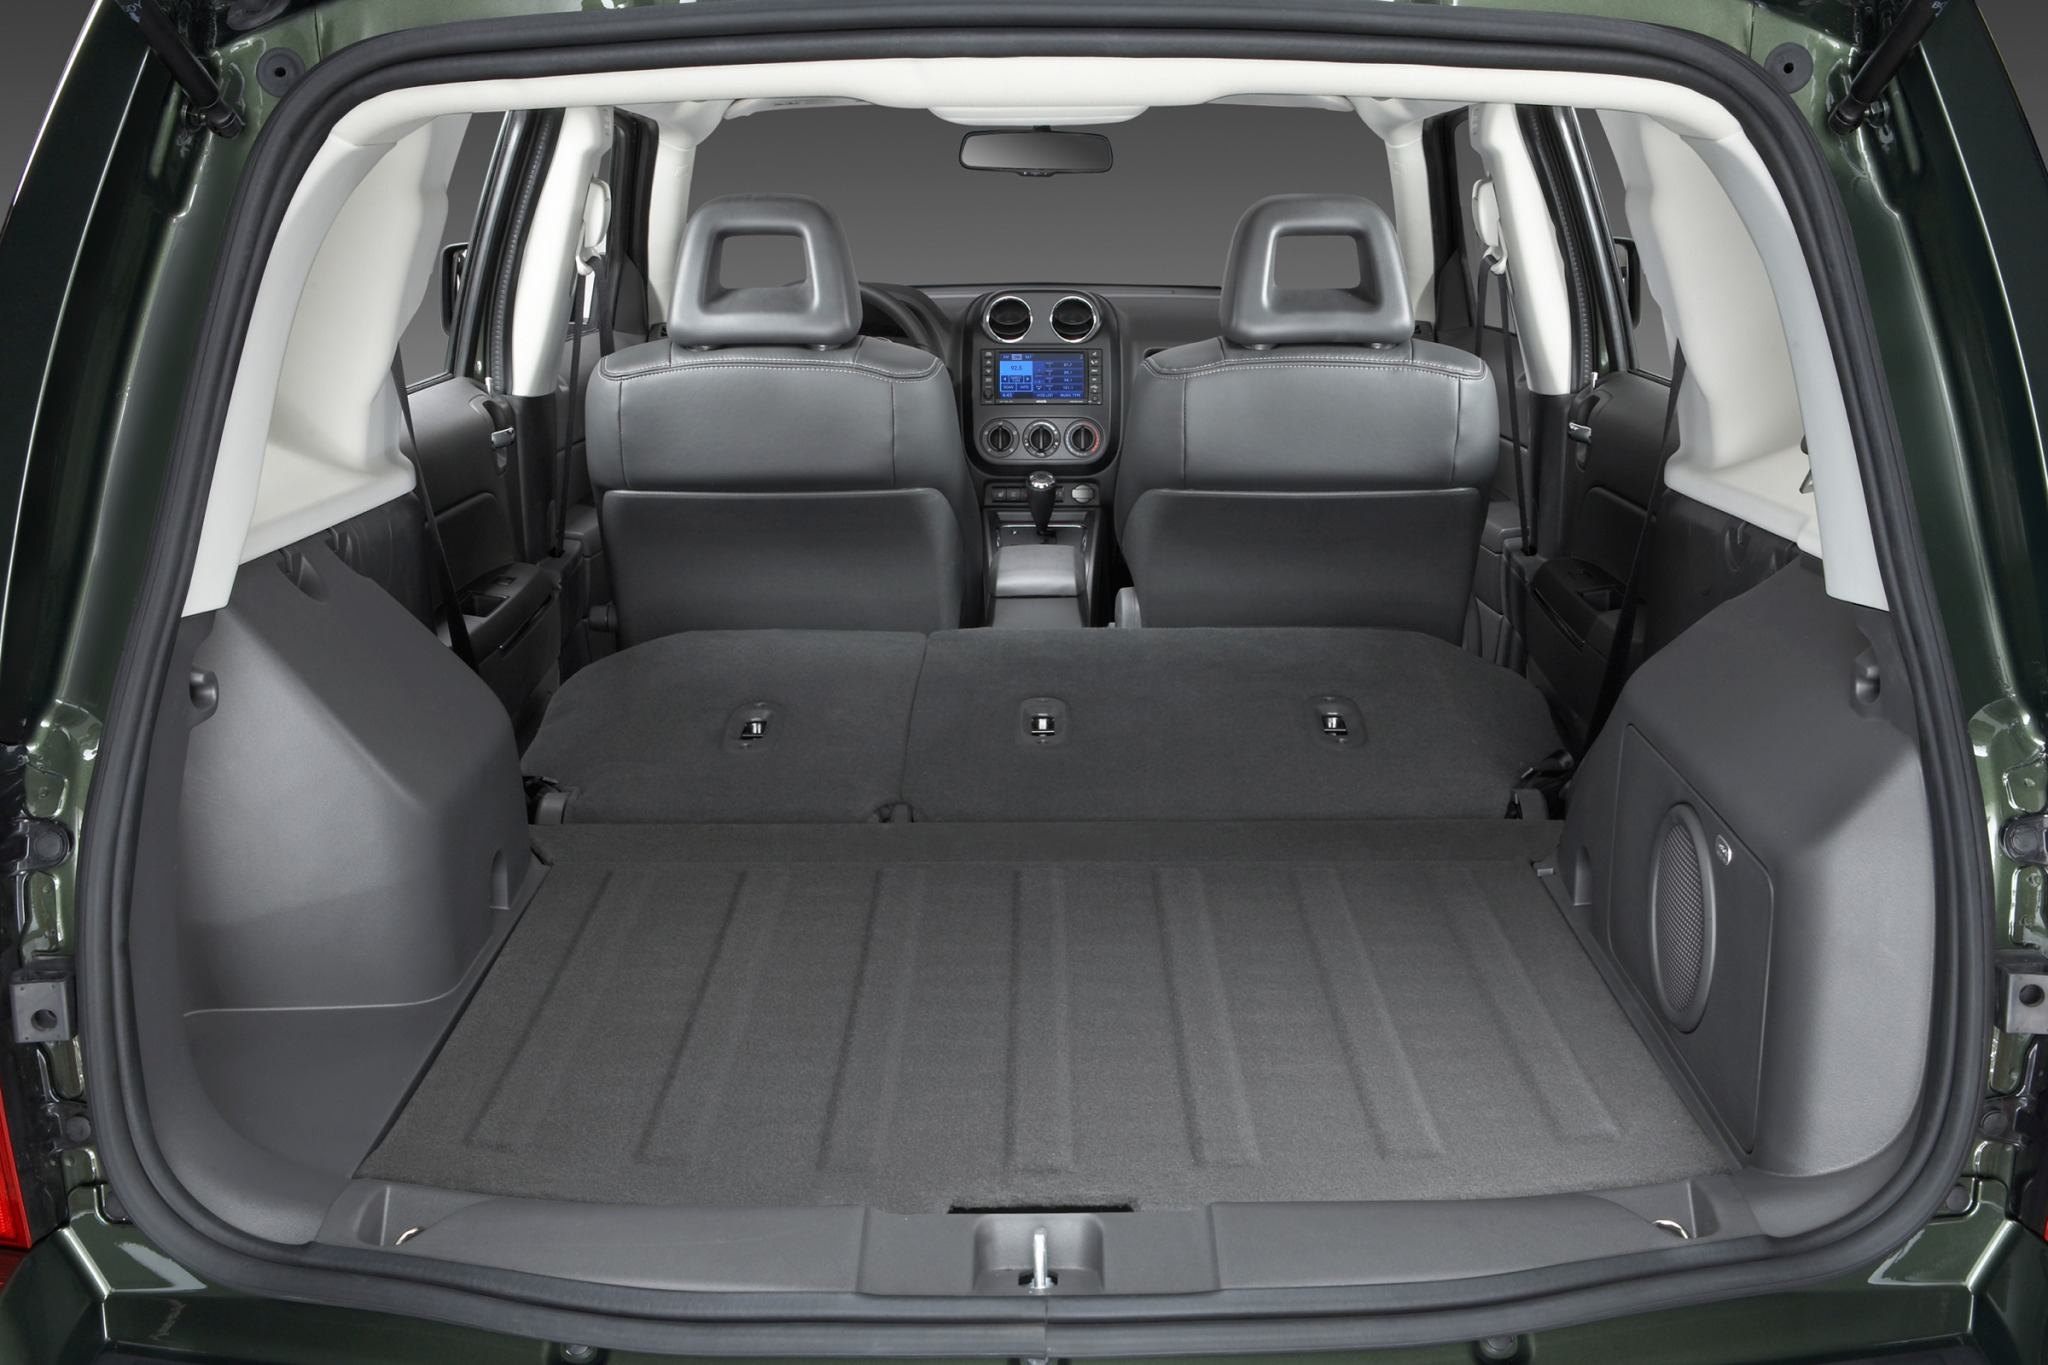 2010 Jeep Patriot Limited interior #8